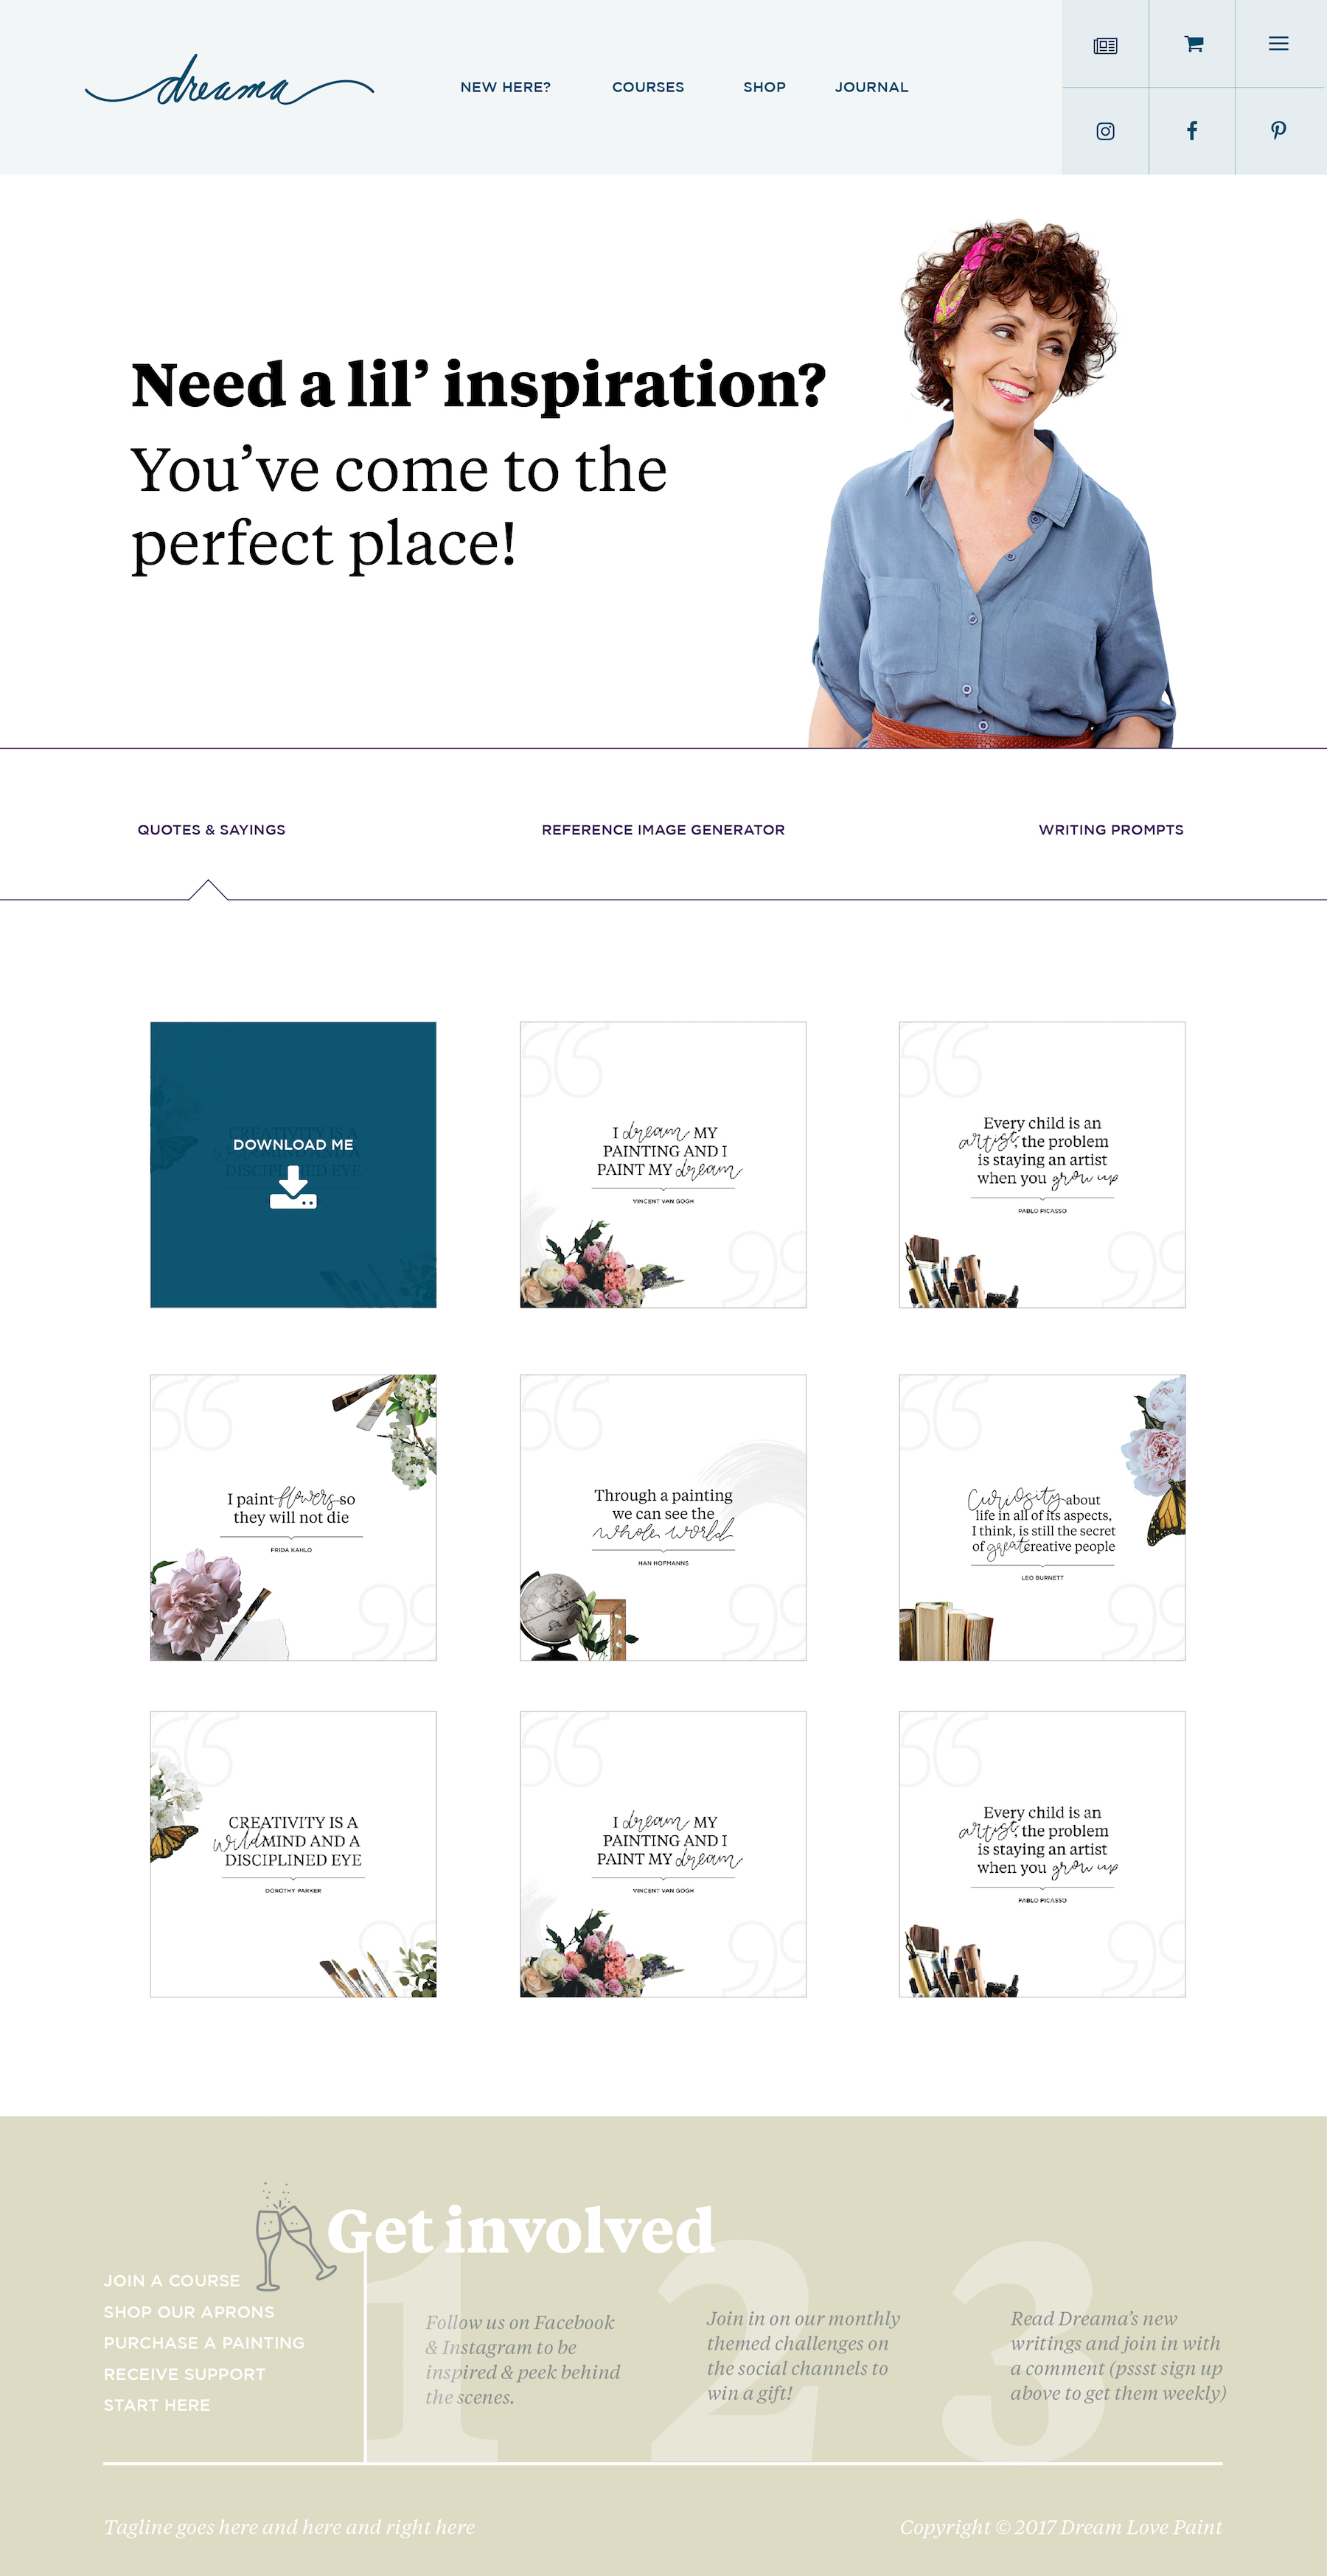 Dreama Tolle Perry Website Design Develpoment UX UI Artists Website Identity Division Co Studio